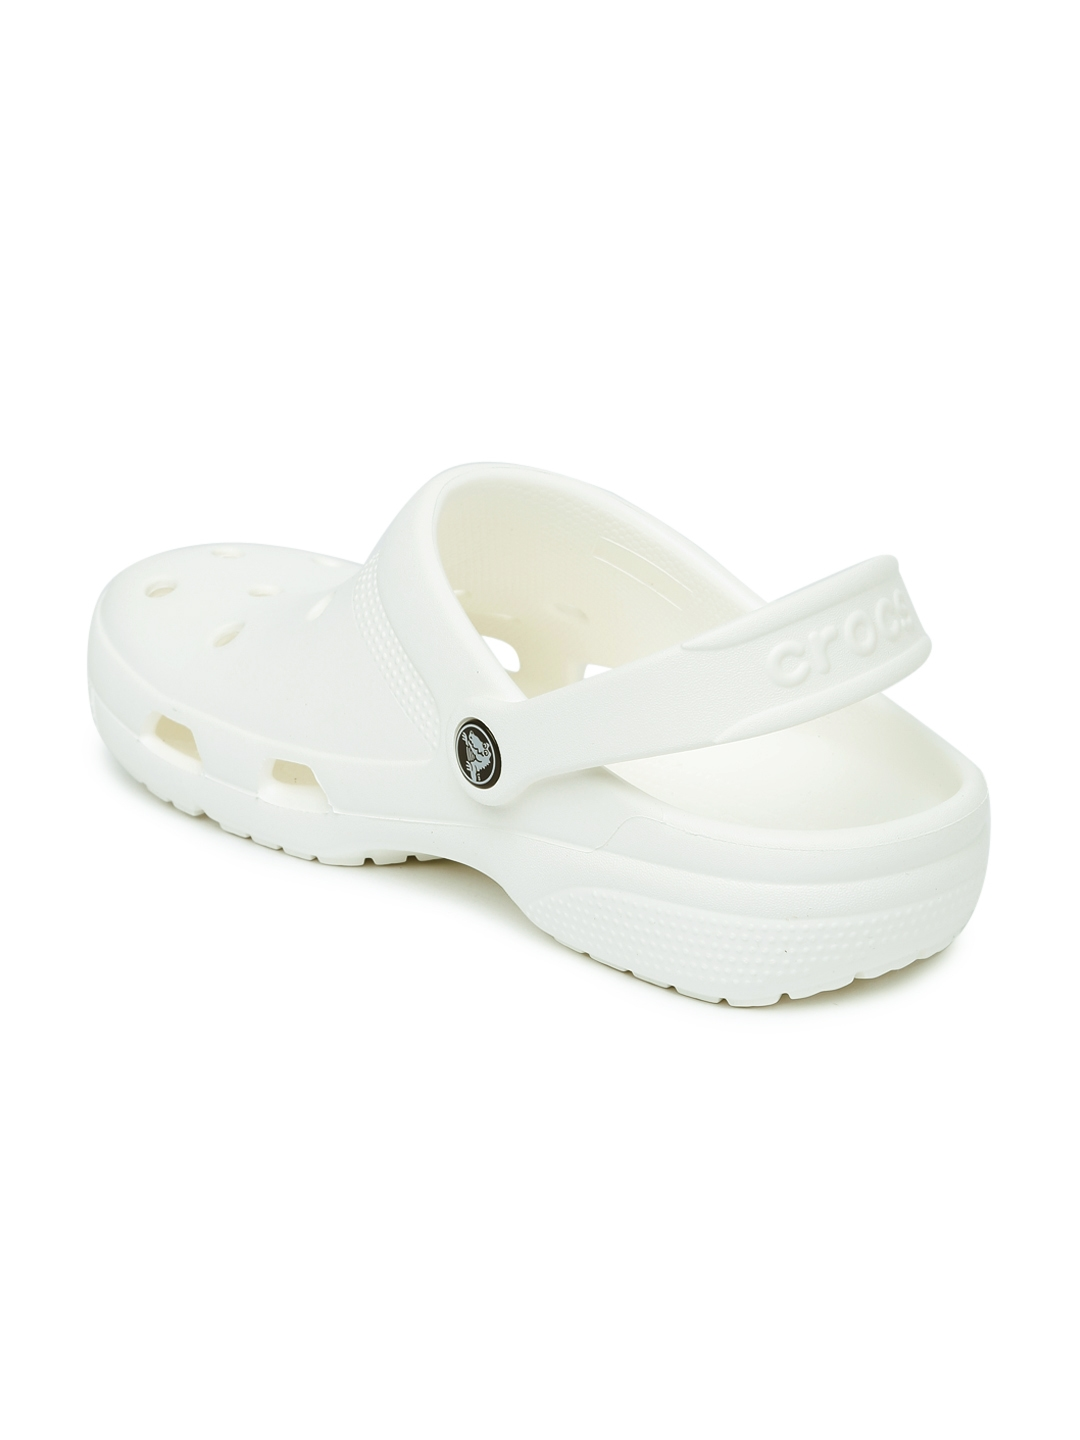 d23958e4d1a7 Buy Crocs Unisex White Clogs - Flip Flops for Unisex 1942272